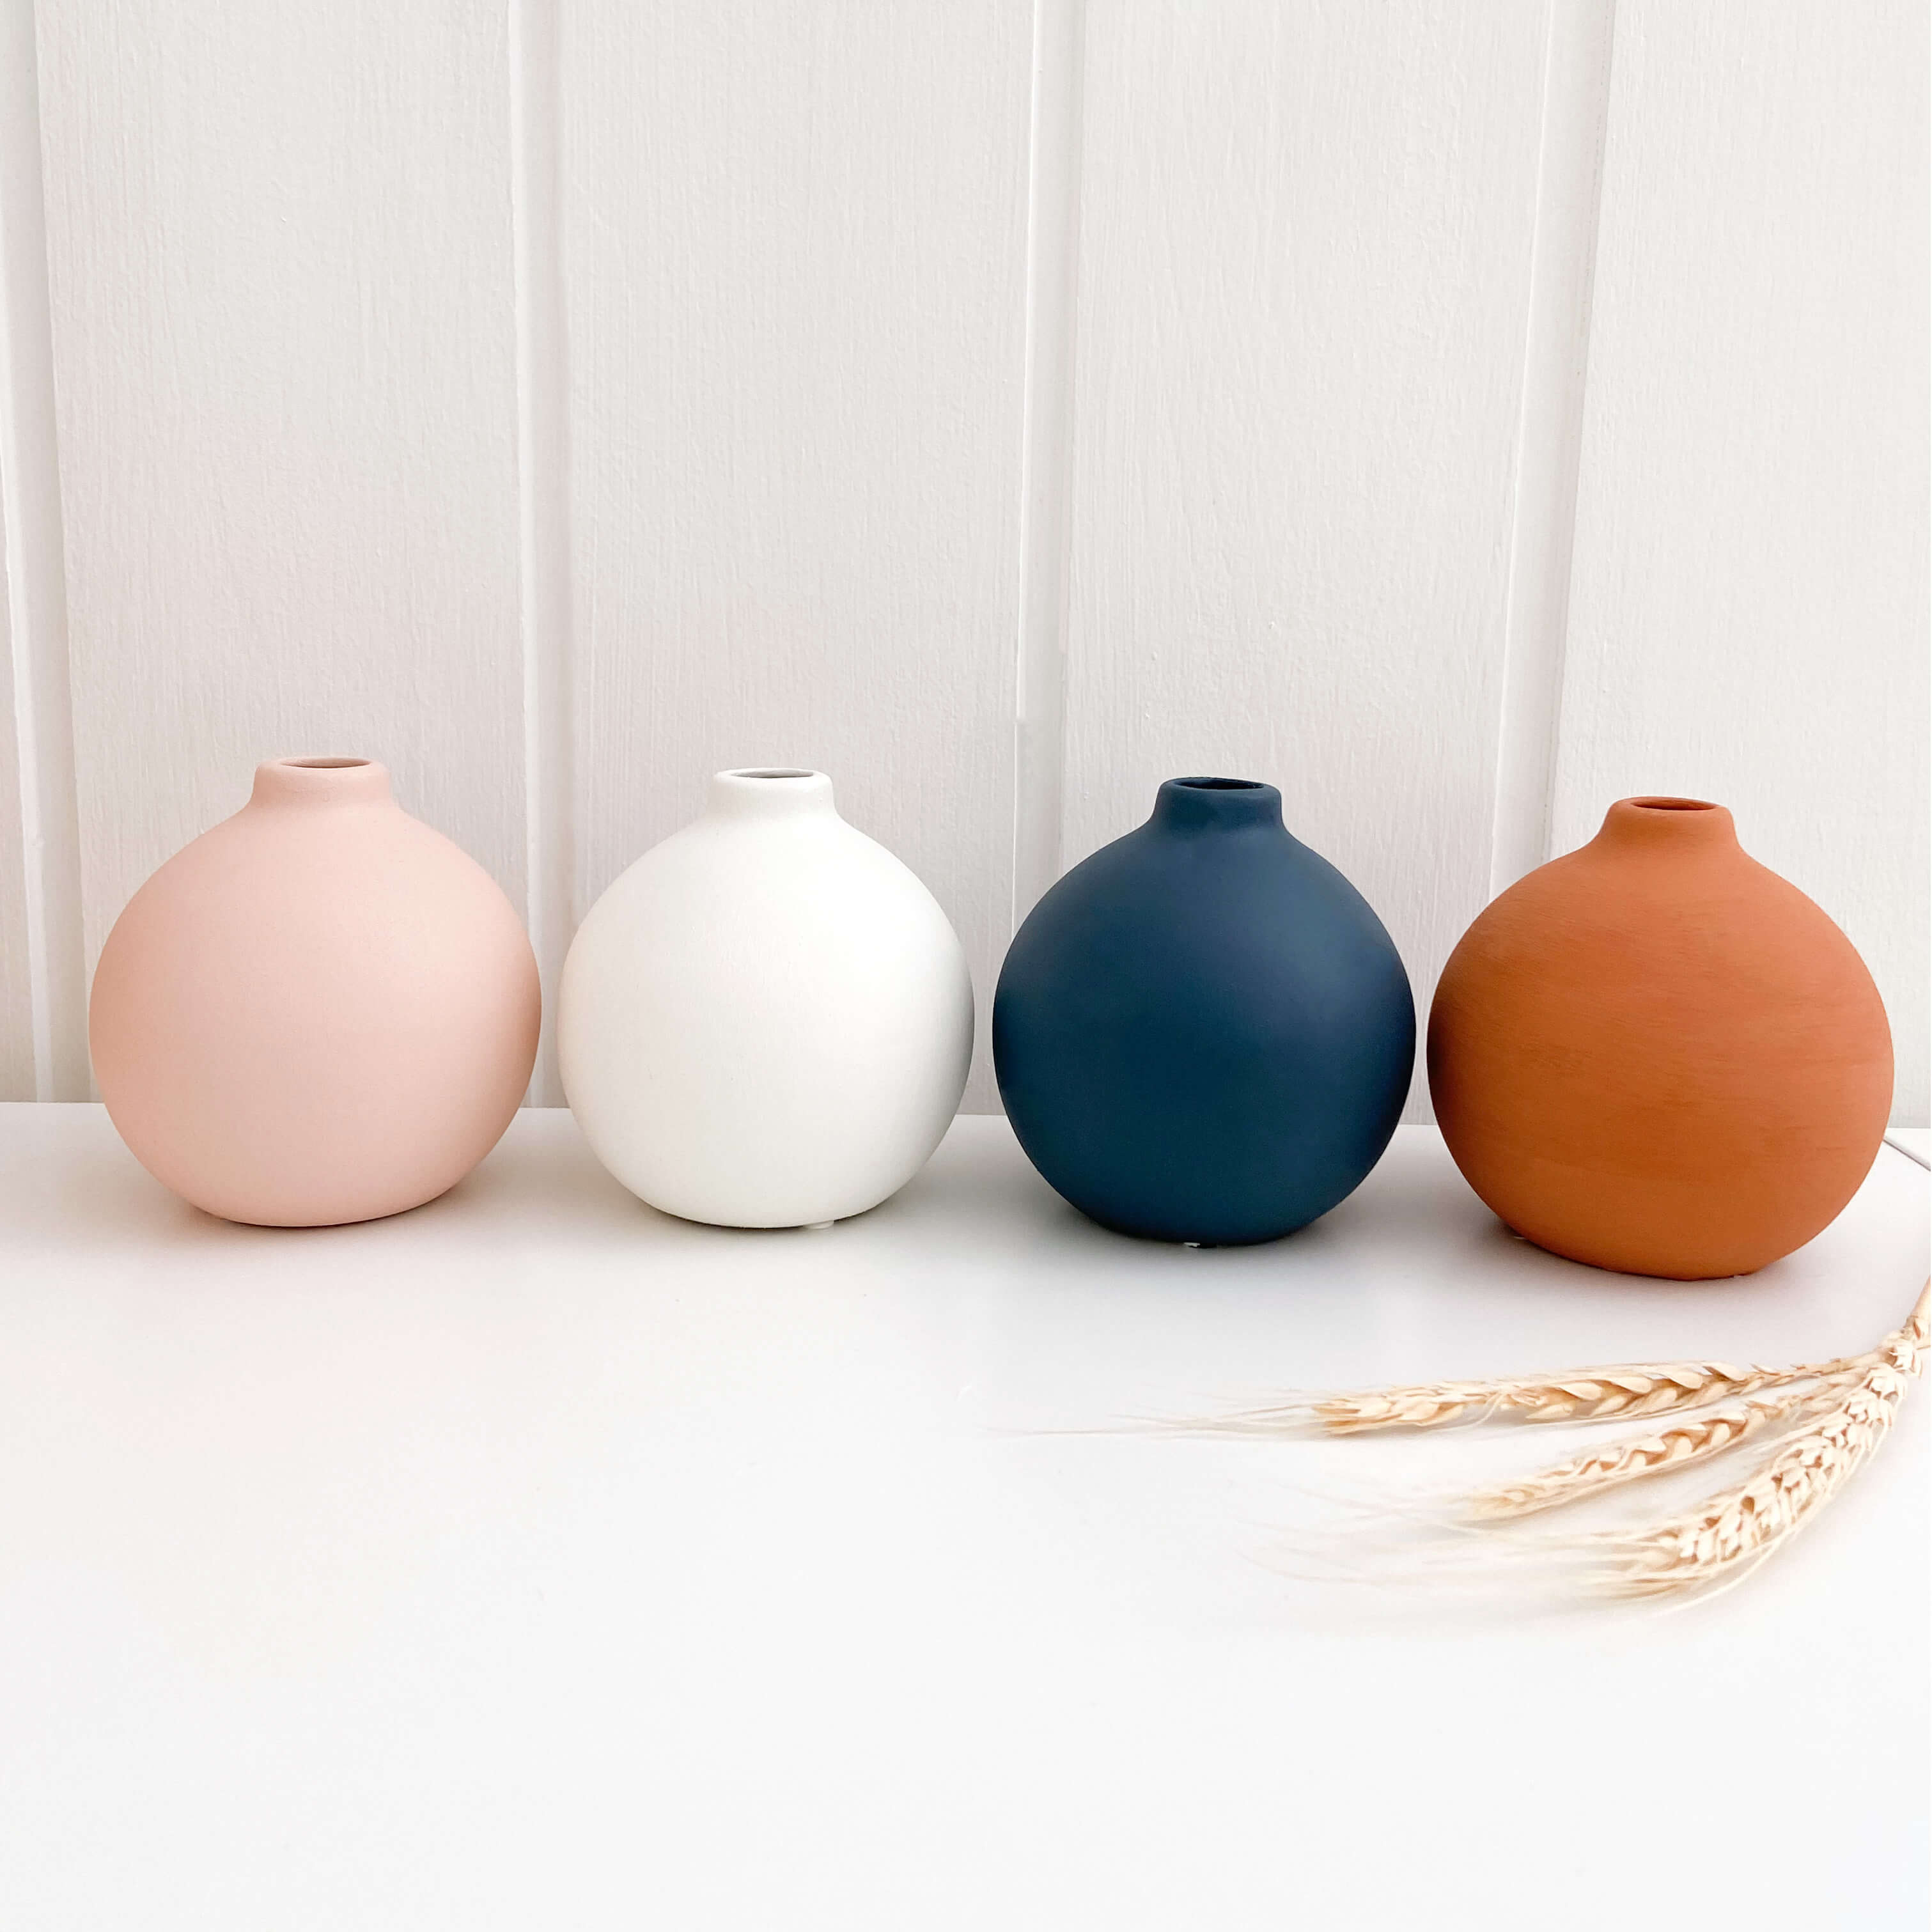 4 vases sitting on nursery drawers below shelf. The boho style vases are in pink, white, navy and terracotta.